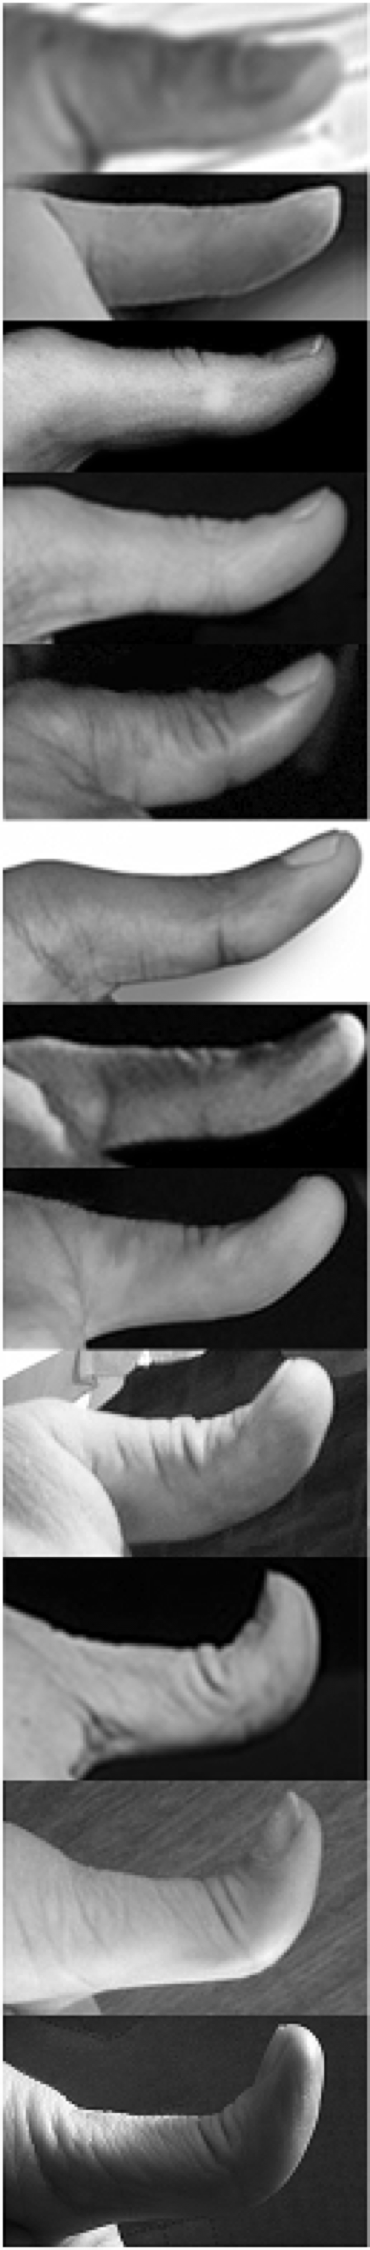 Glass and Kistler (1953) did a similar study, except they used a protractor held against the outside of the thumb to measure the thumb angle, and obtained the following results: Distribution of thumb